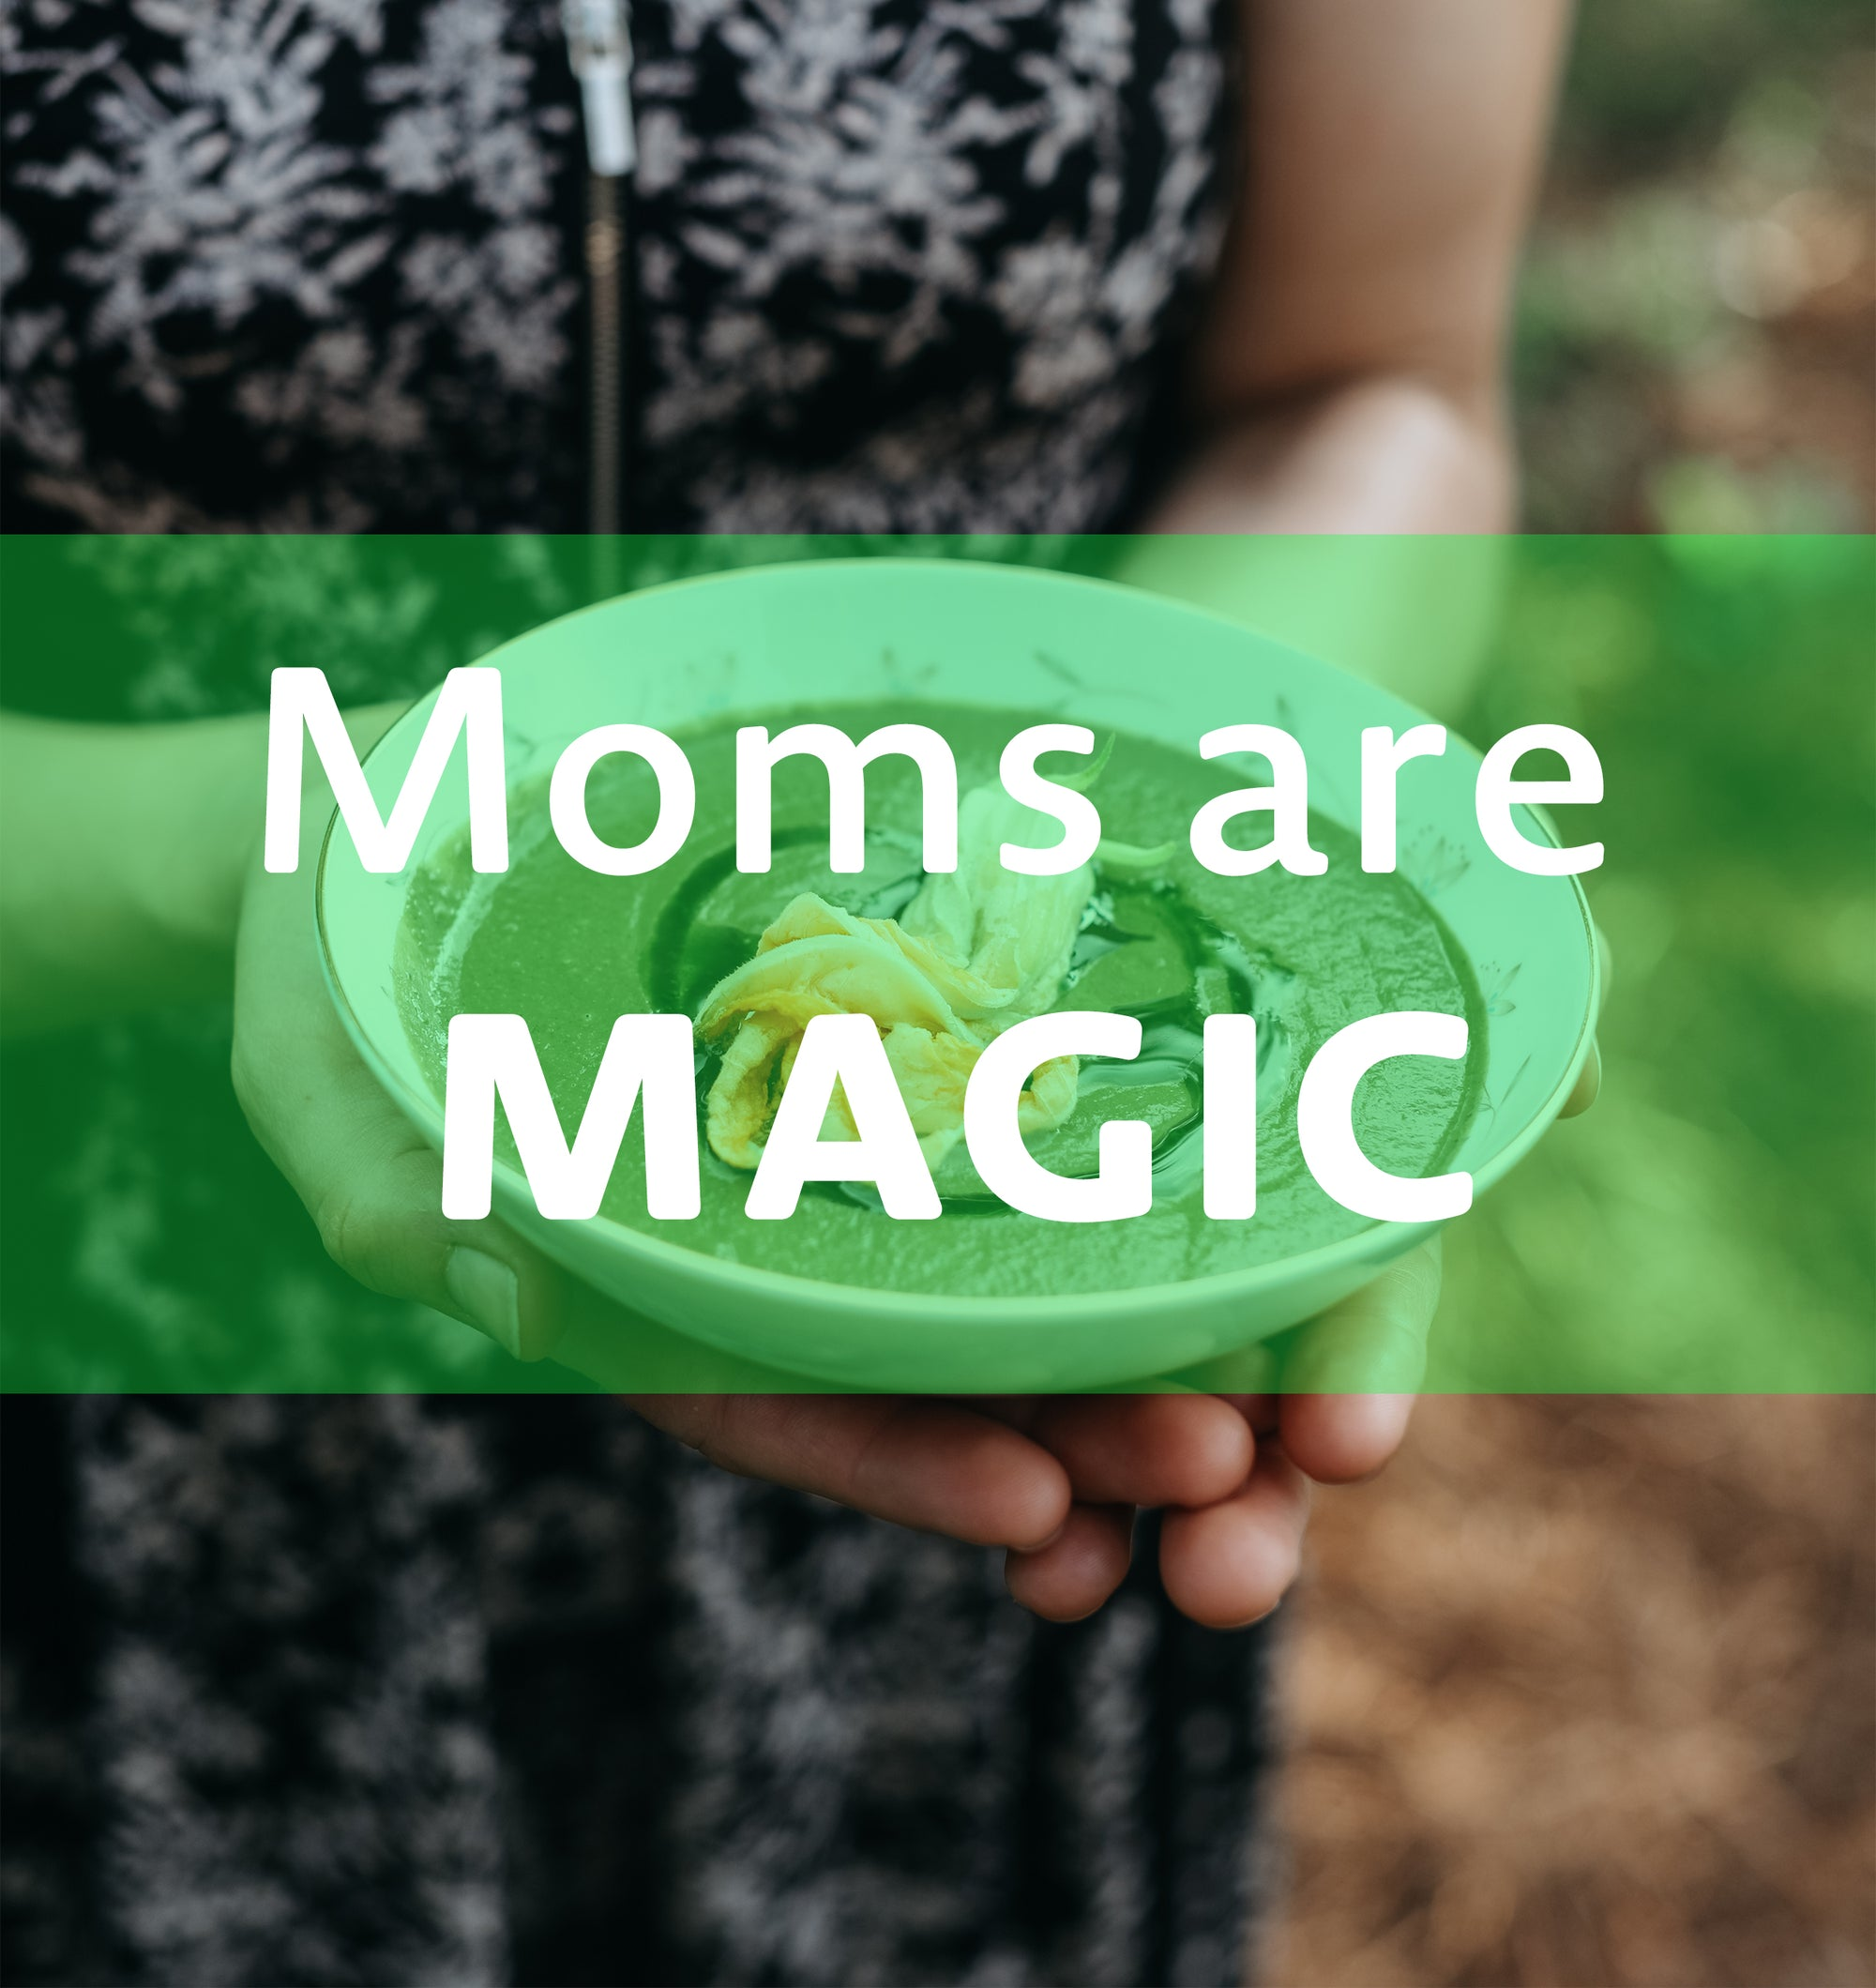 Moms are Magic. Here are some special gifts to celebrate them this Mother's Day!